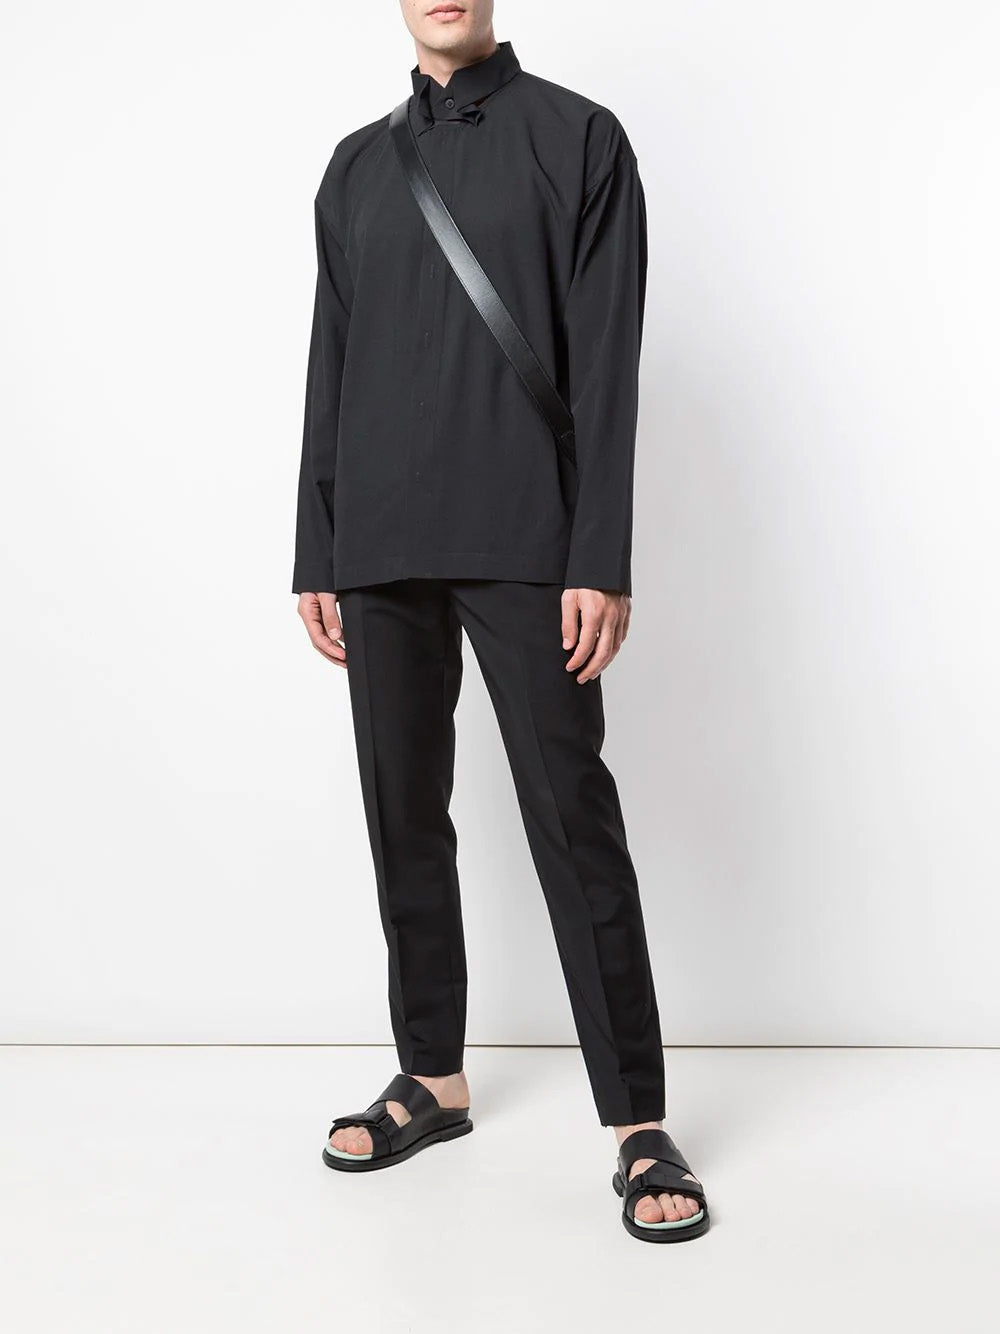 DECONSTRUCTED COLLAR SHIRT